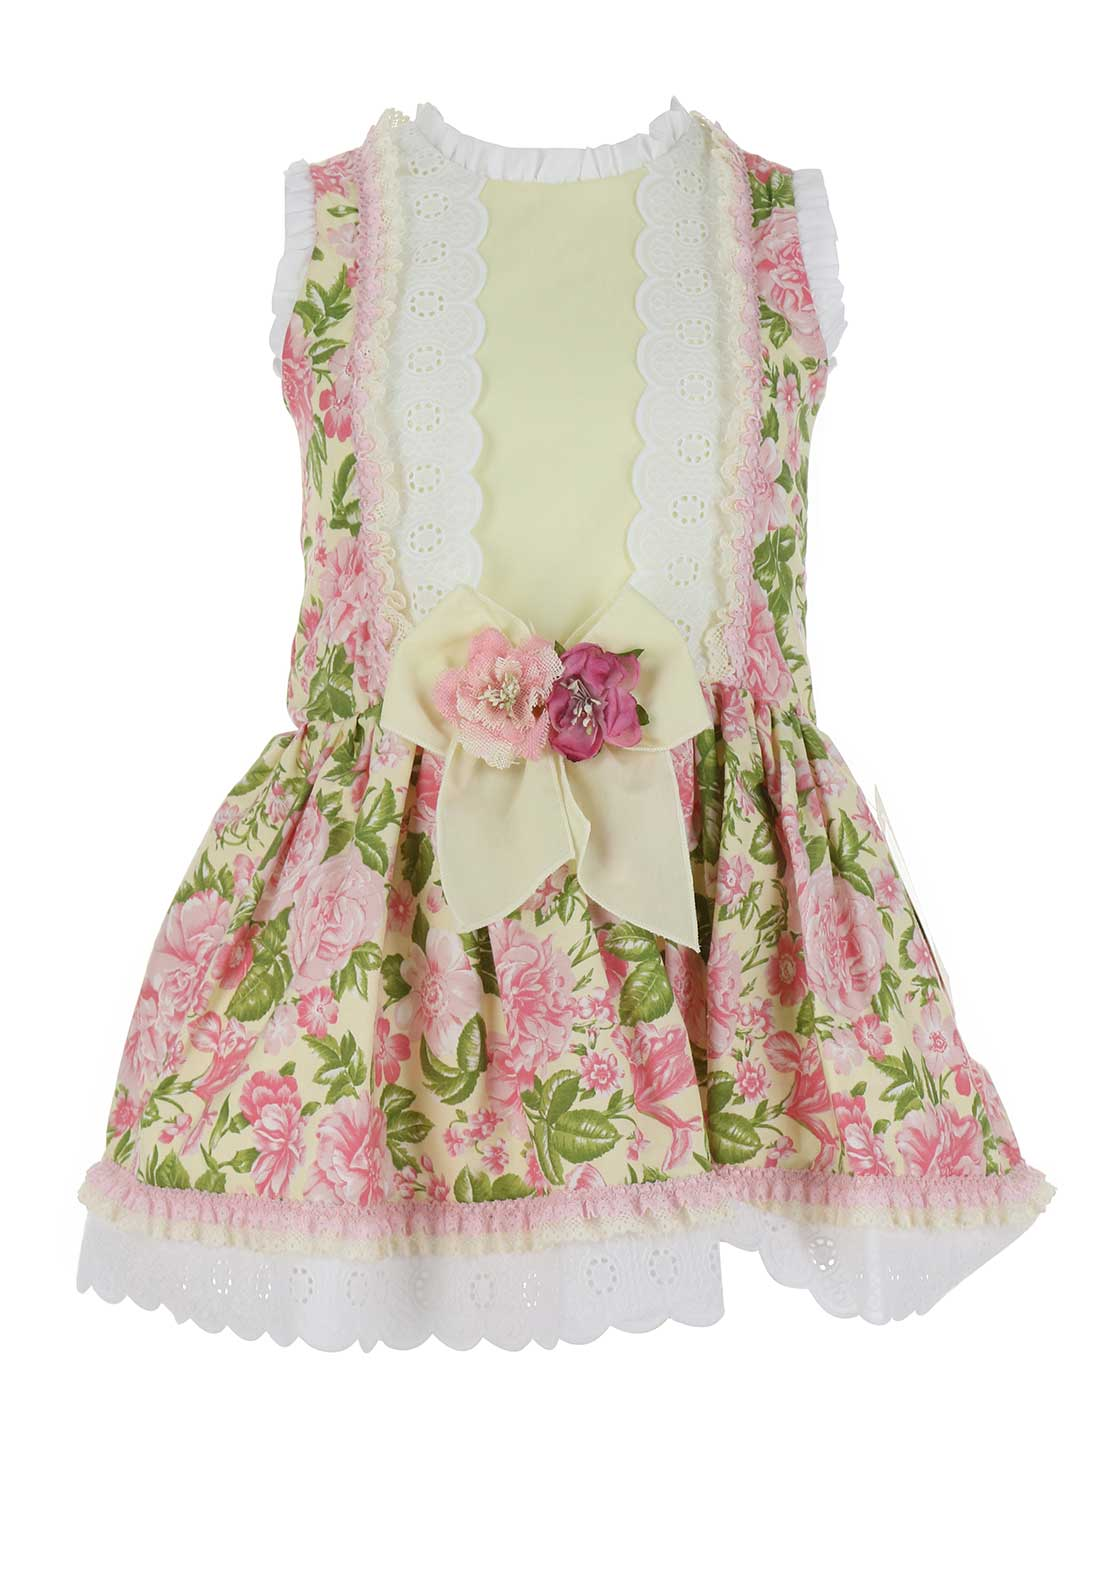 Bea Cadillac Rose Print Frilled Dress, Pink